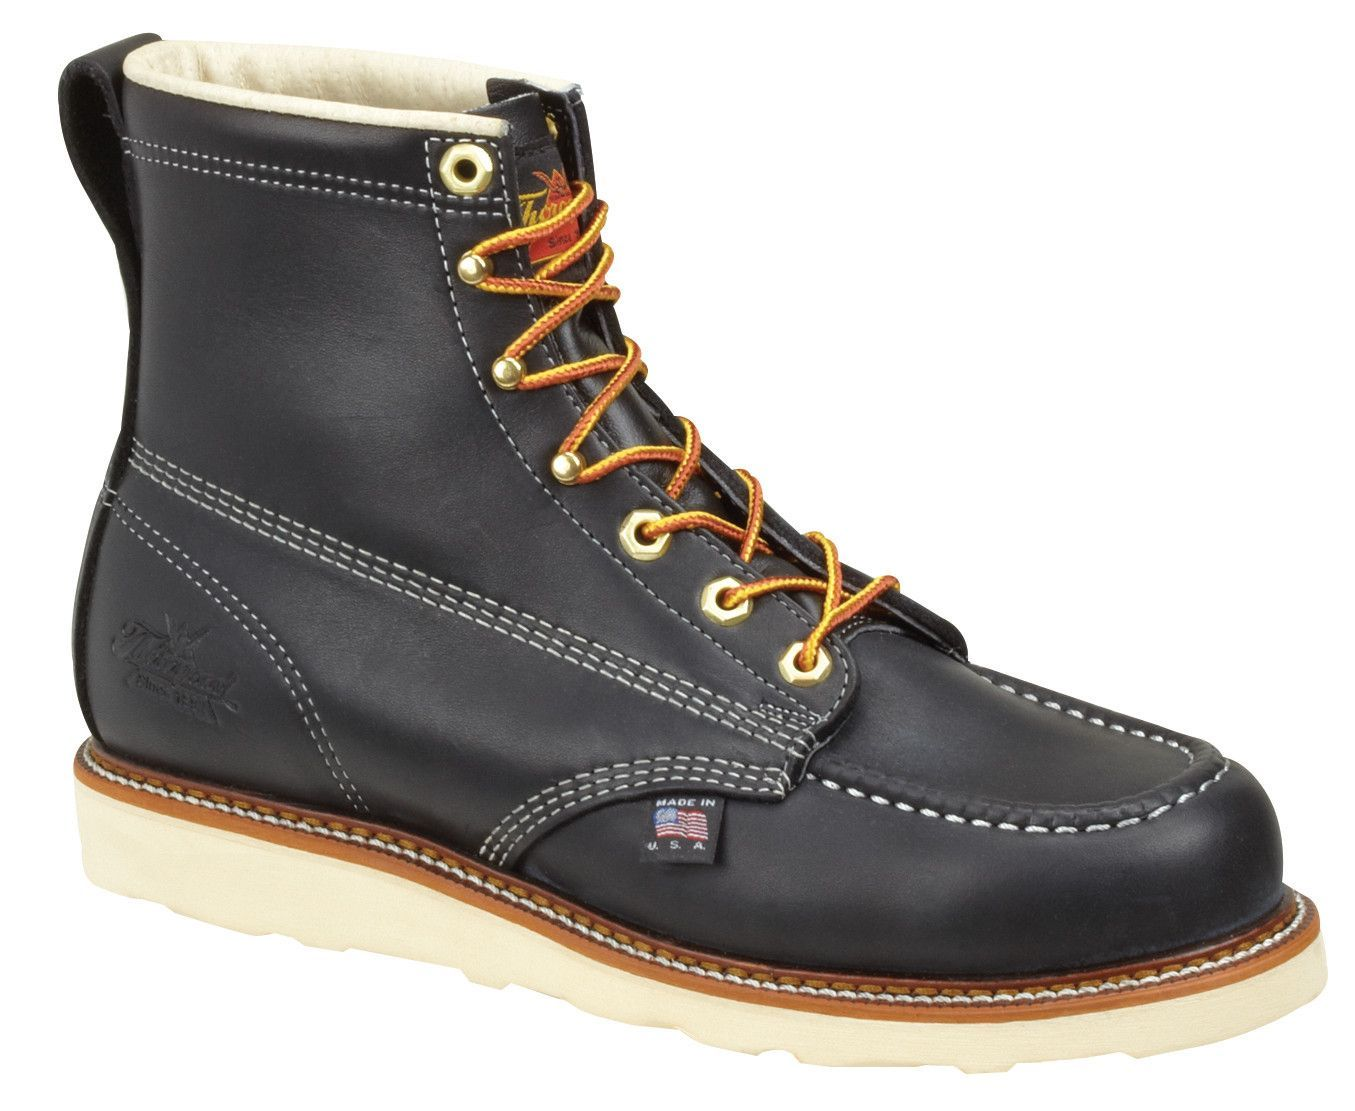 Thorogood Mens Black Leather Wedge Boots 6in Moc Safety Toe